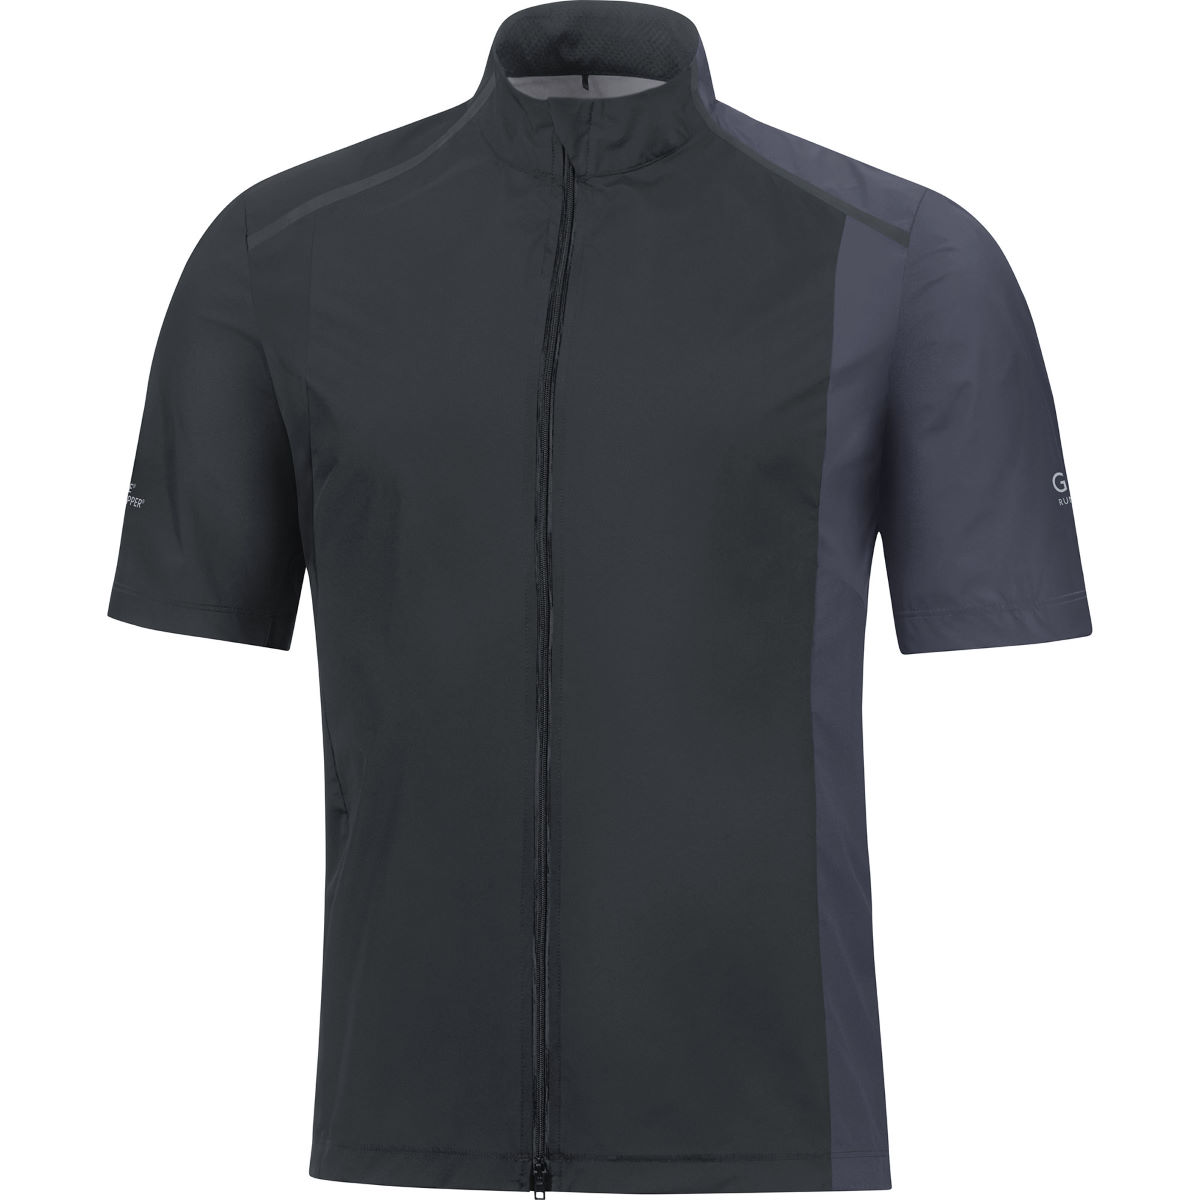 Image of Maillot Gore Running Wear Fusion WINDSTOPPER® - S